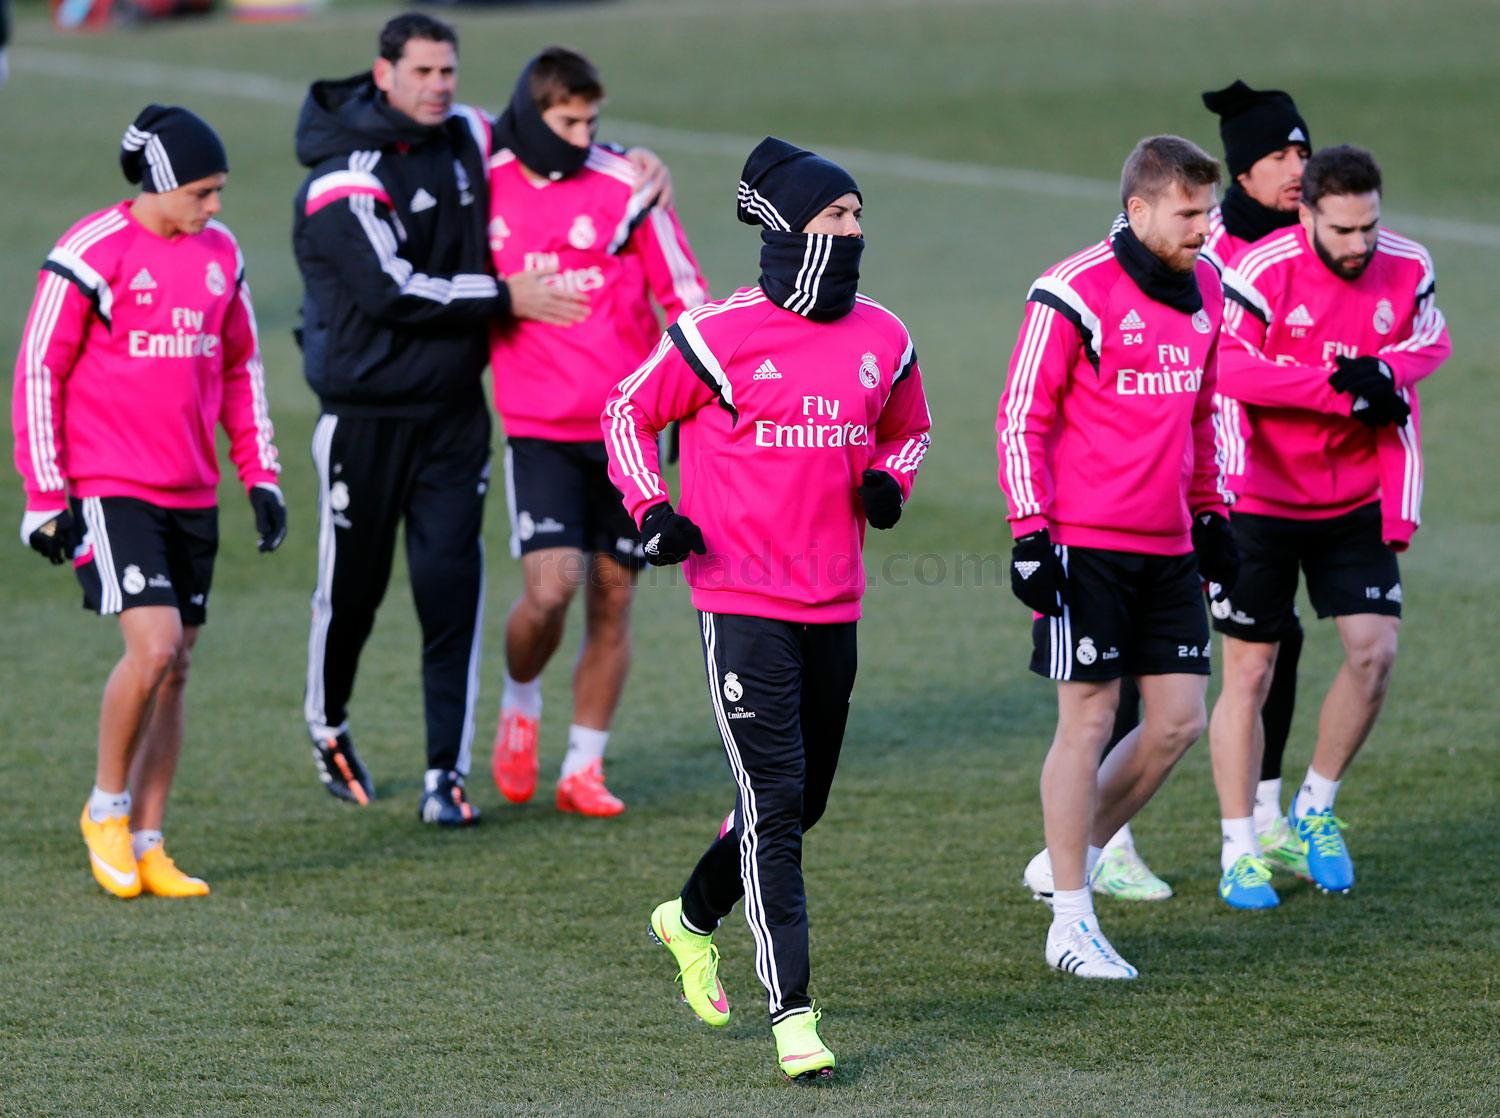 Real Madrid - Entrenamiento del Real Madrid - 05-02-2015